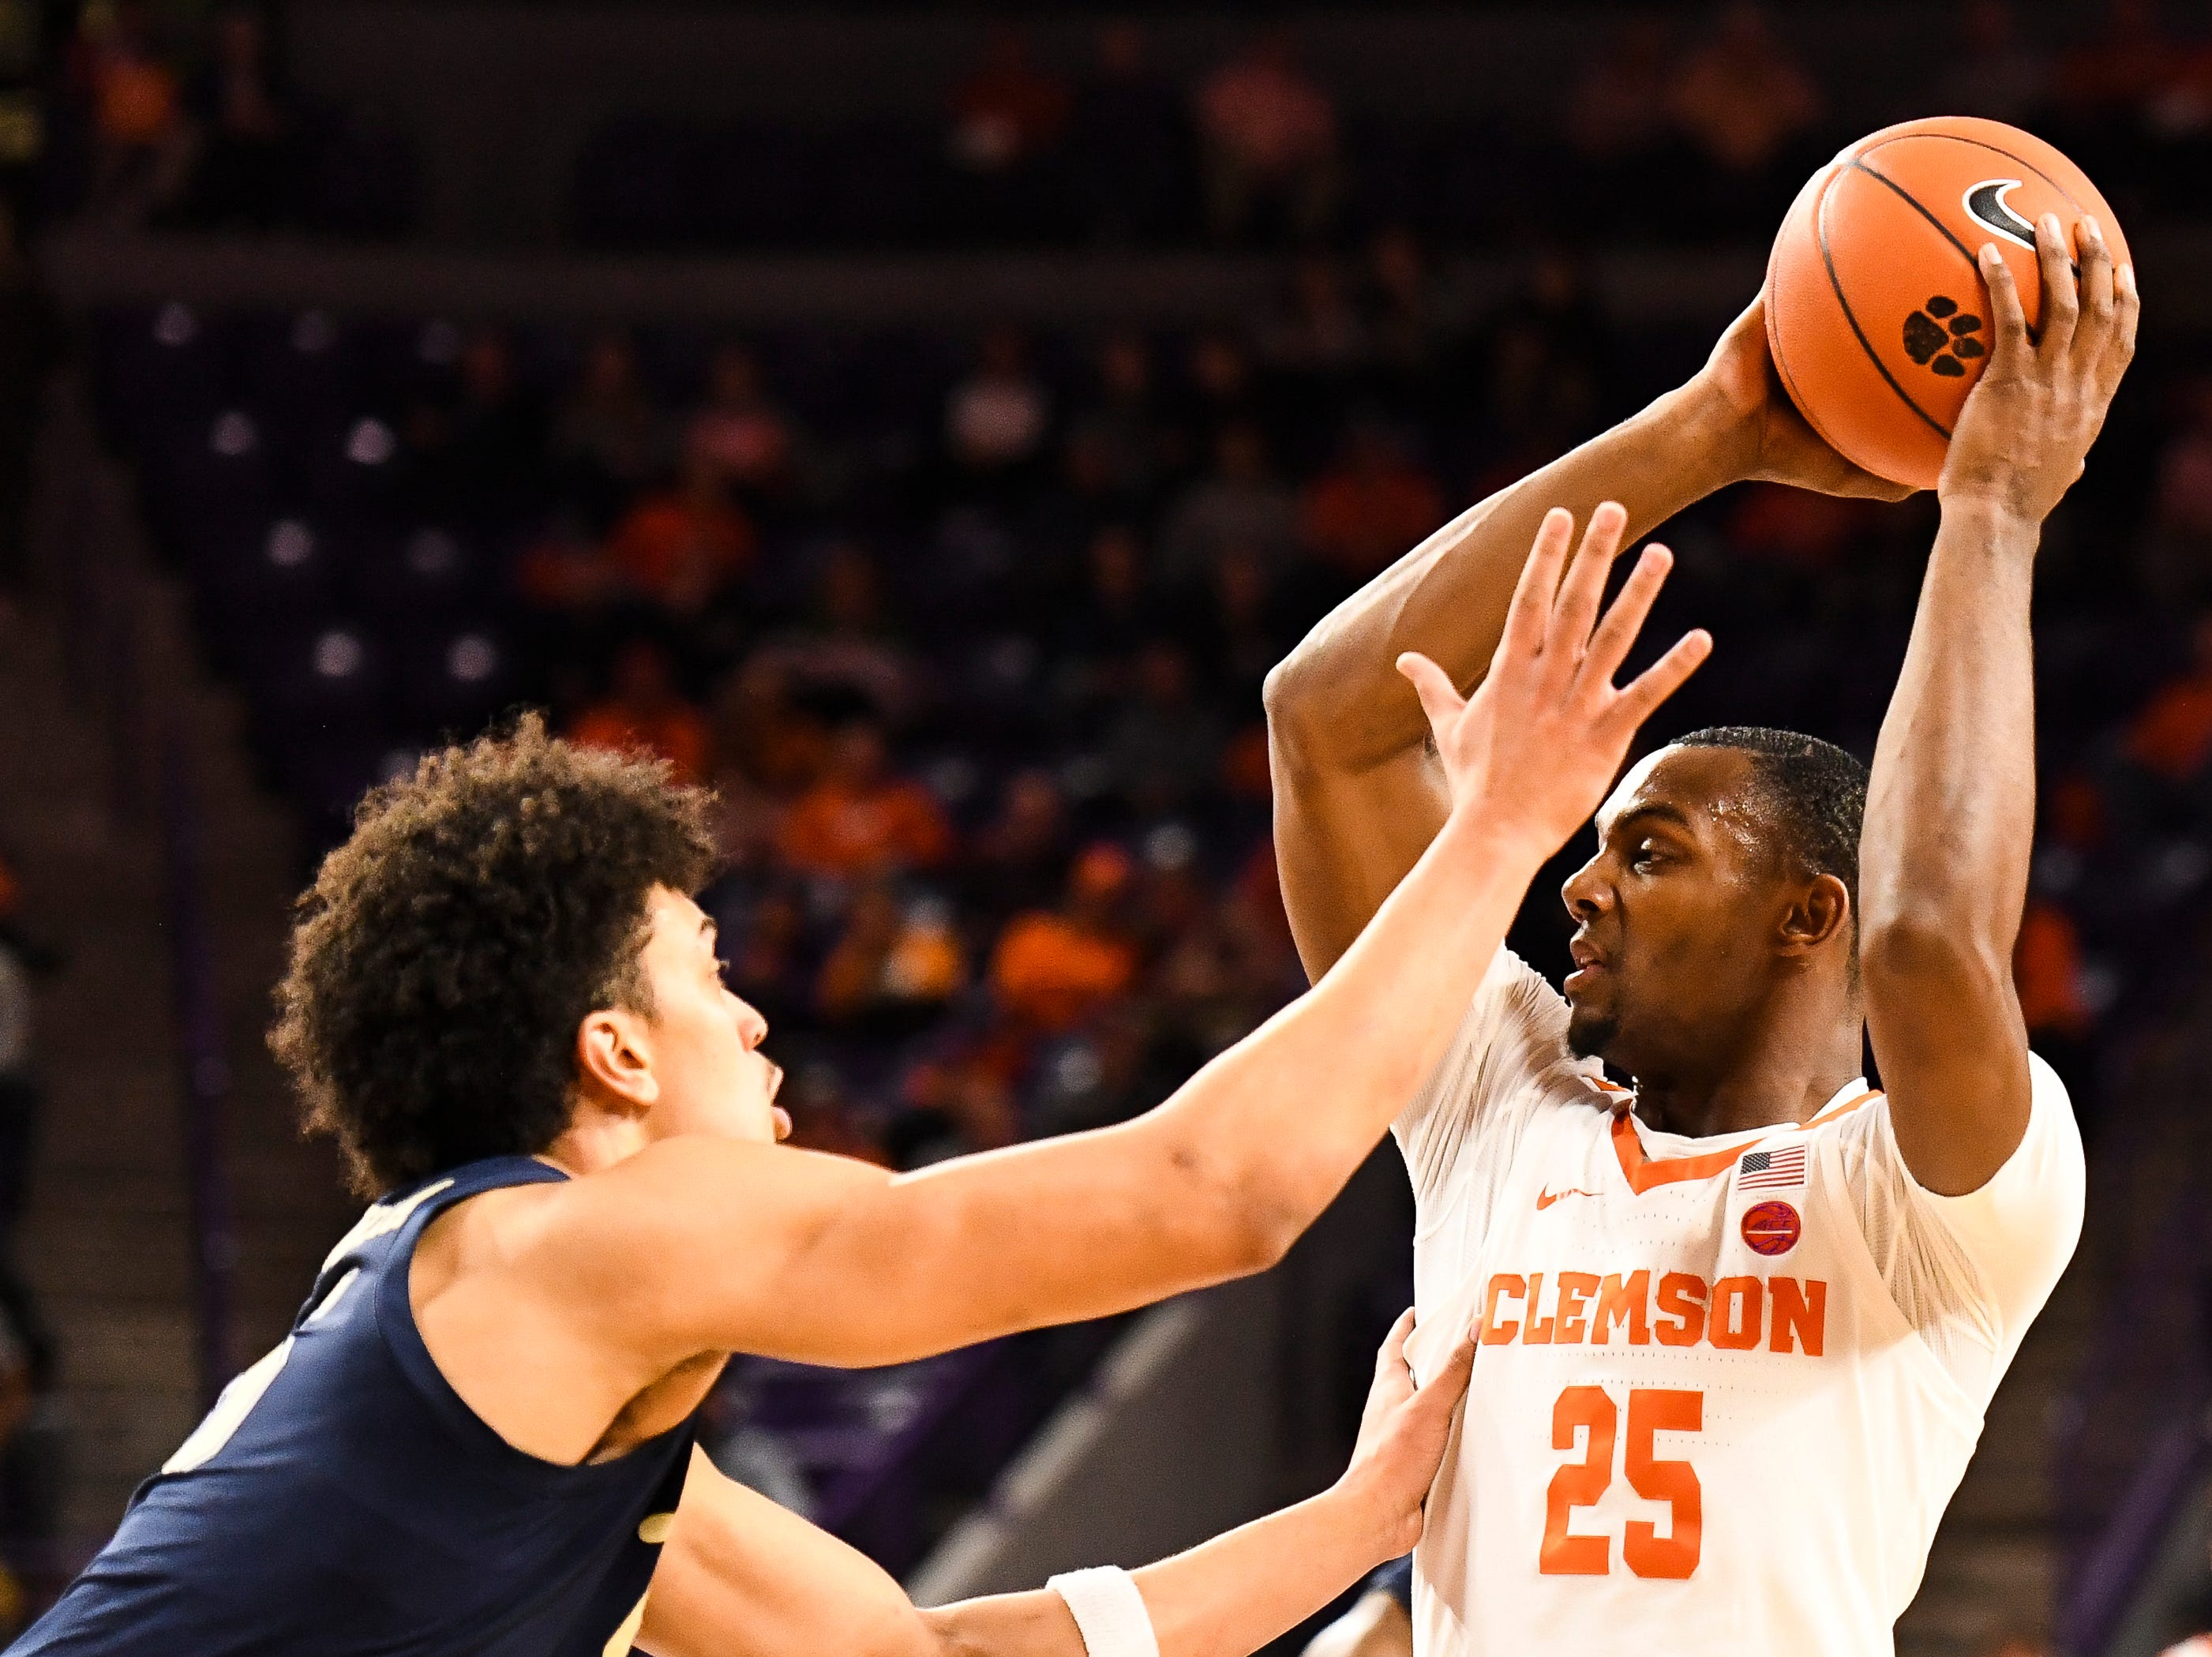 Clemson forward Aamir Simms (25) searches for an open teammate to throw the ball to as PittsburghÕs Keen Chuckwuka (15) defends at Littlejohn Stadium on Tuesday, Jan. 29, 2019.